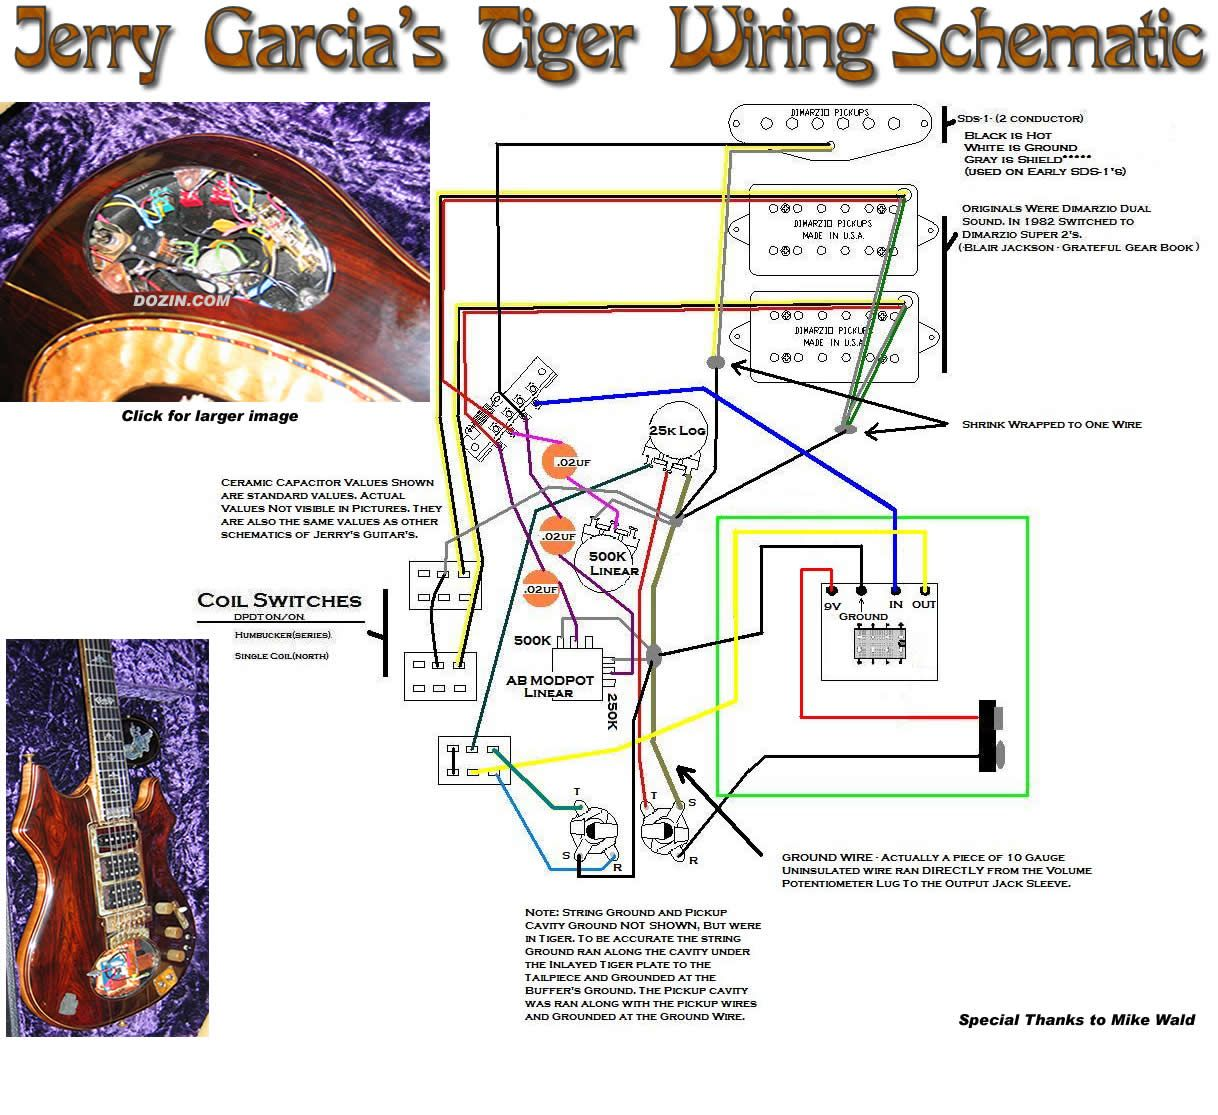 small resolution of jerry garcia s tiger schematic mod music guitar kits telecaster guitar guitar pickups